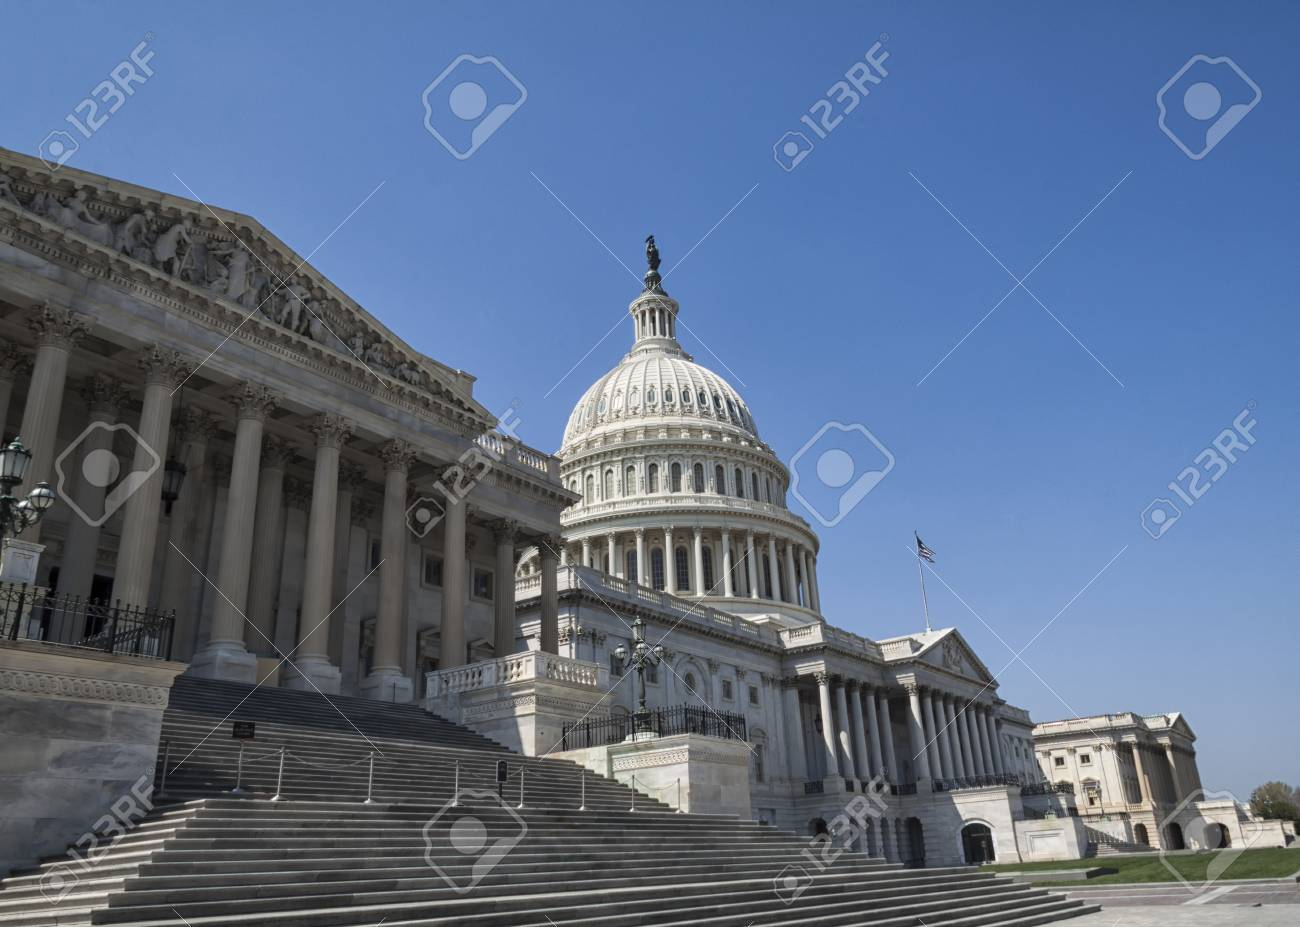 the United States Capitol Building in Washington D.C. - 37925889